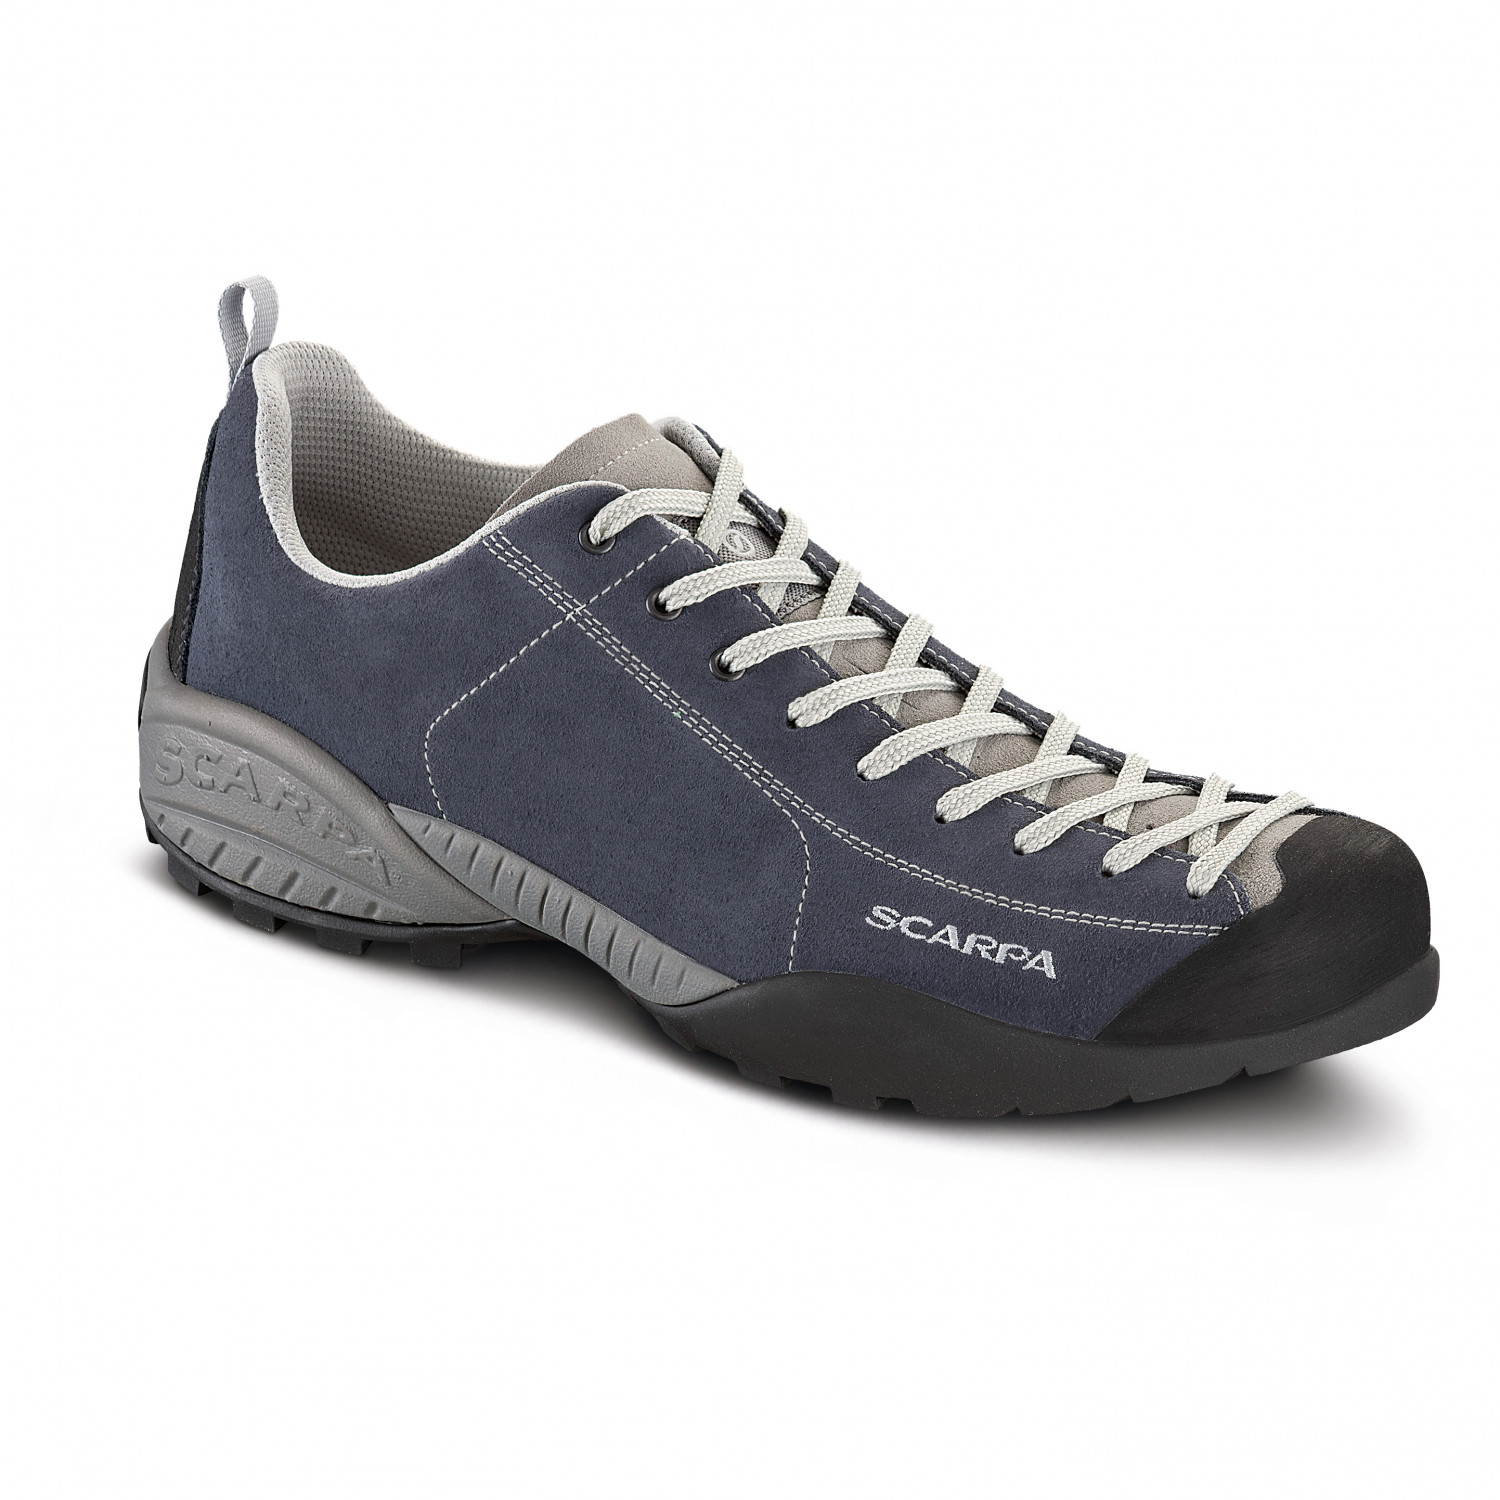 Scarpa Mojito Hiking Shoes Free Uk Delivery